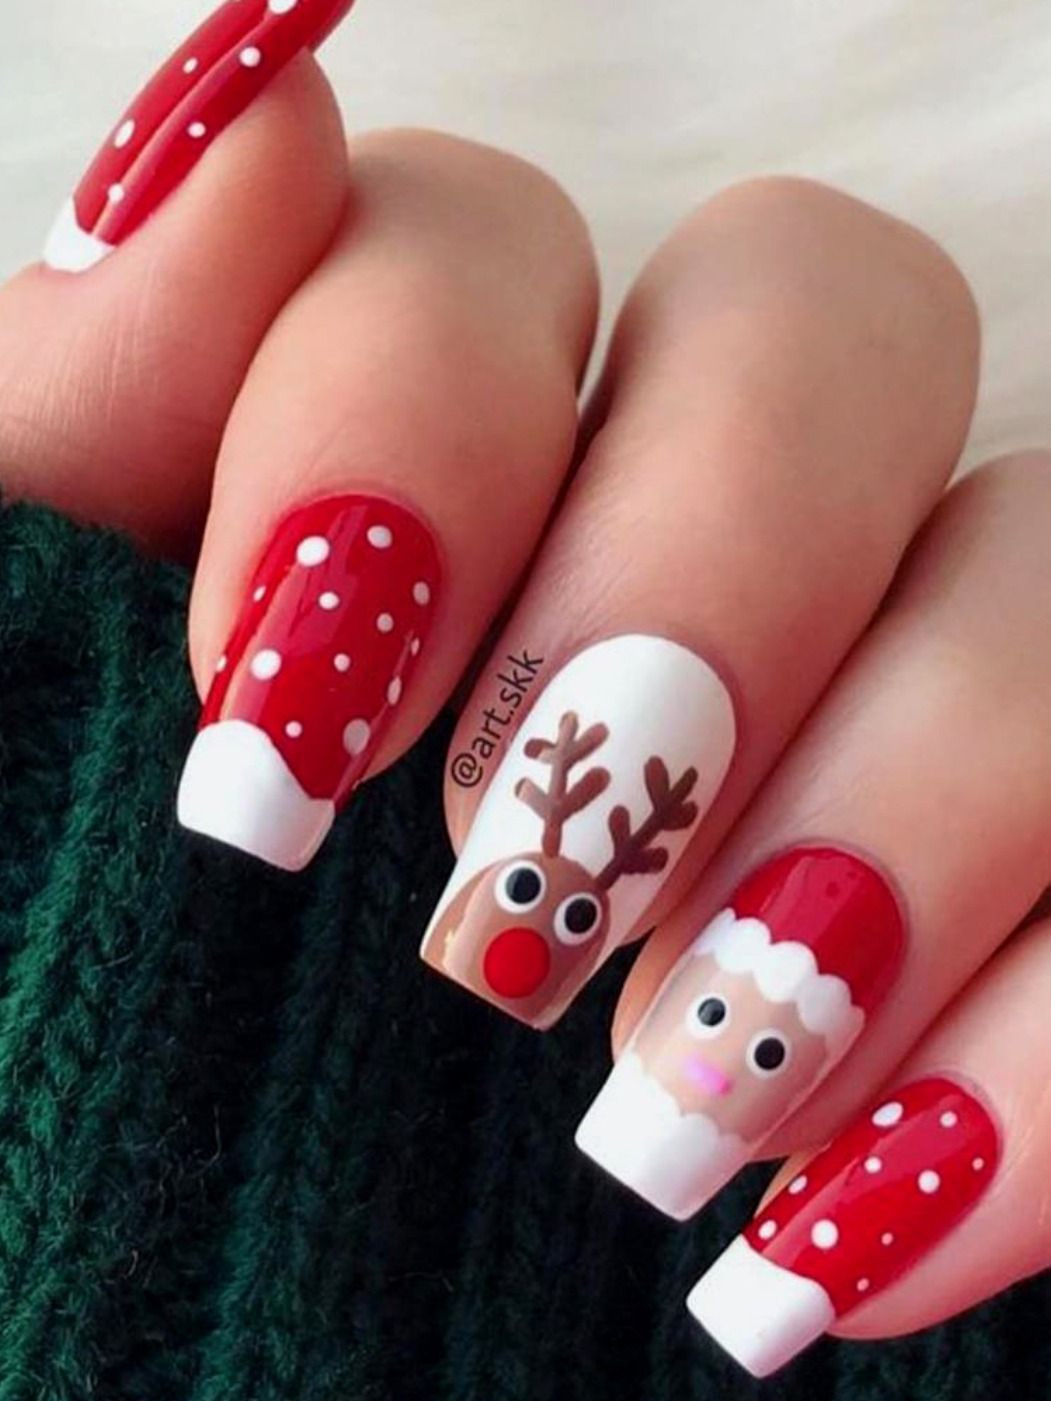 The Cutest and Festive Christmas Nail Designs for Celebration #holidaynails